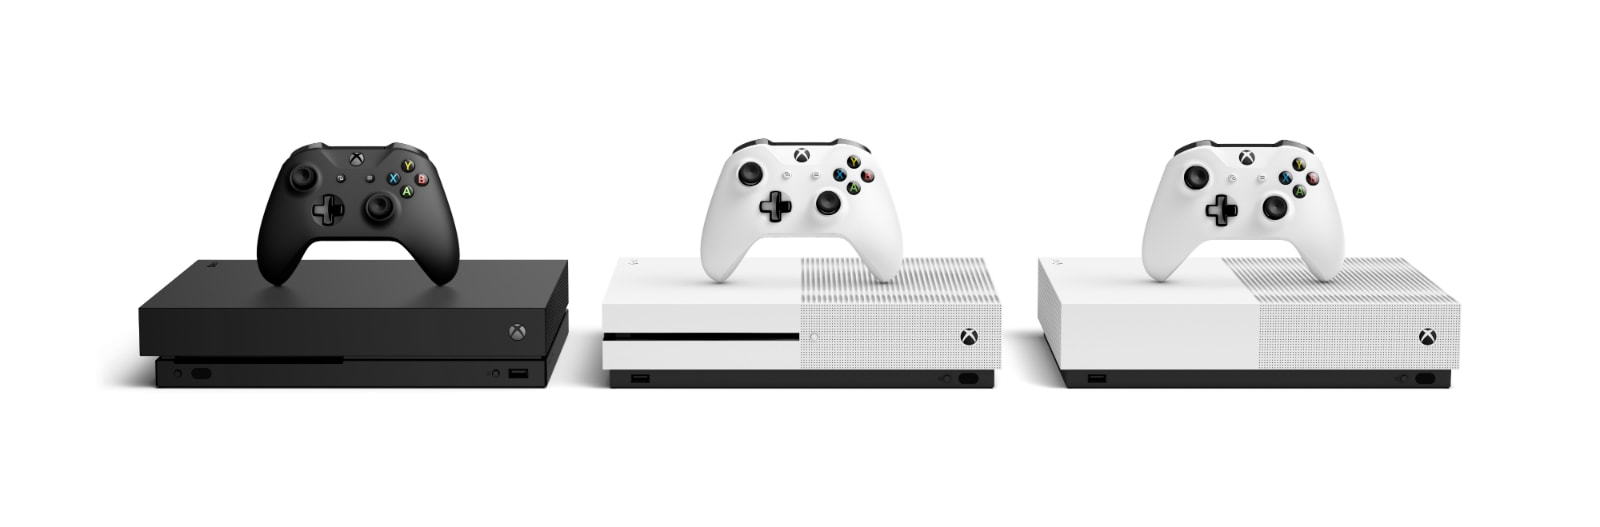 The disc-free Xbox One S hits stores on May 7th for $250